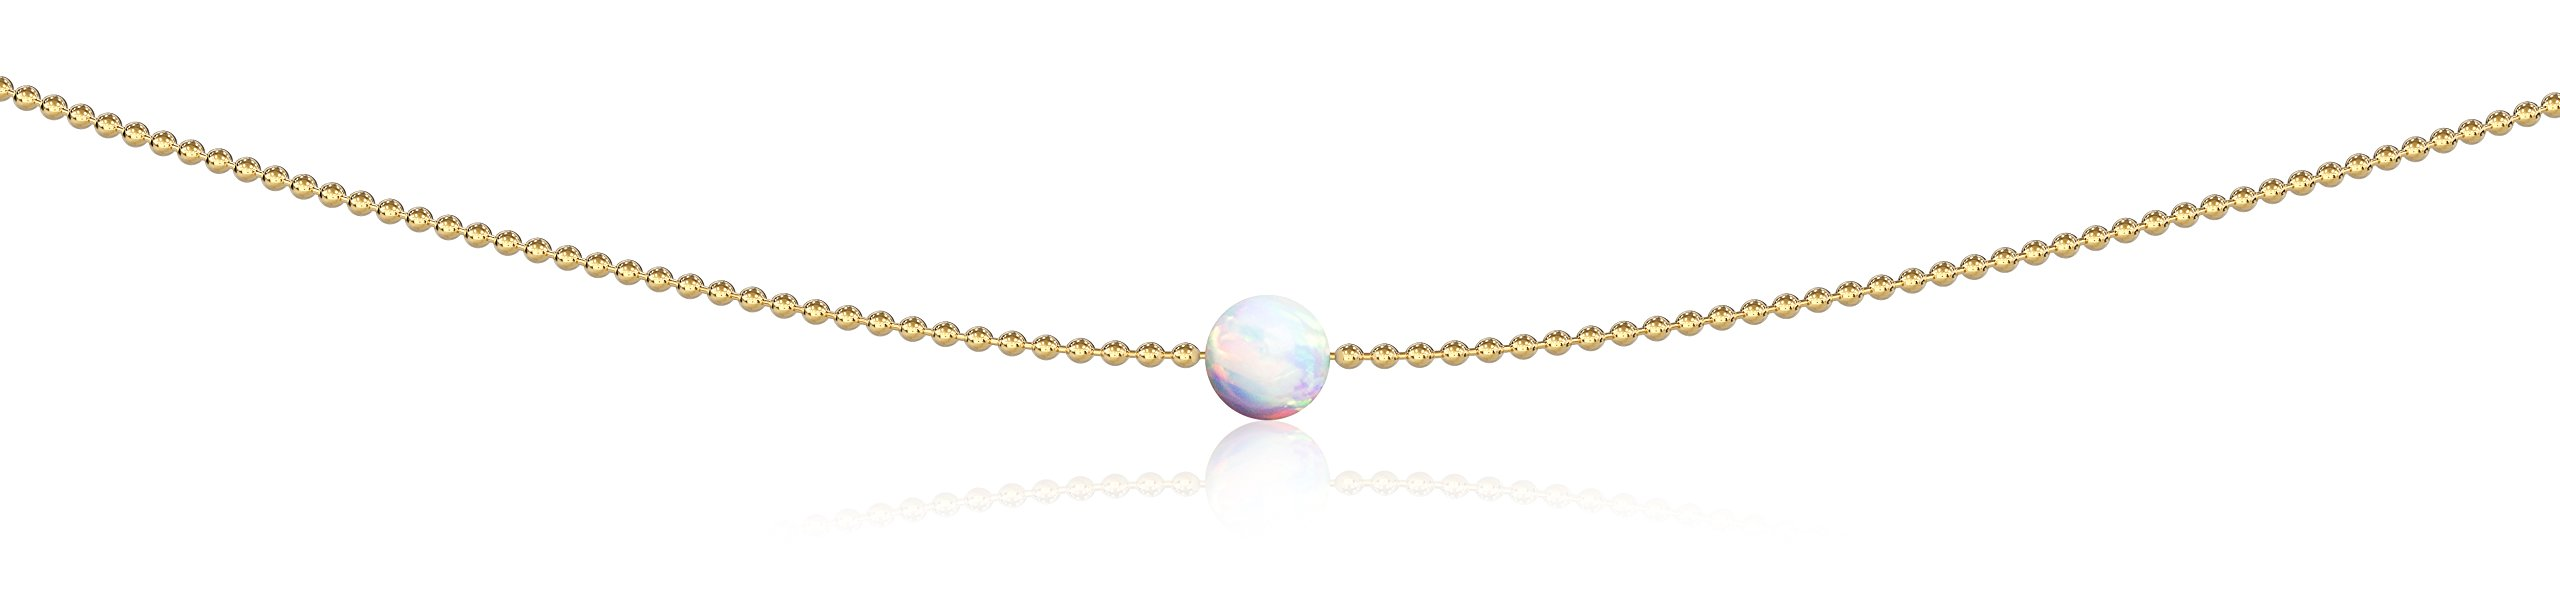 Benevolence LA Opal Choker Pendant Necklace: Jewelry for Woman Teens Girls The Inspire October Birthstone White Opal 14k Gold Dipped 13 Inch Ball Chain